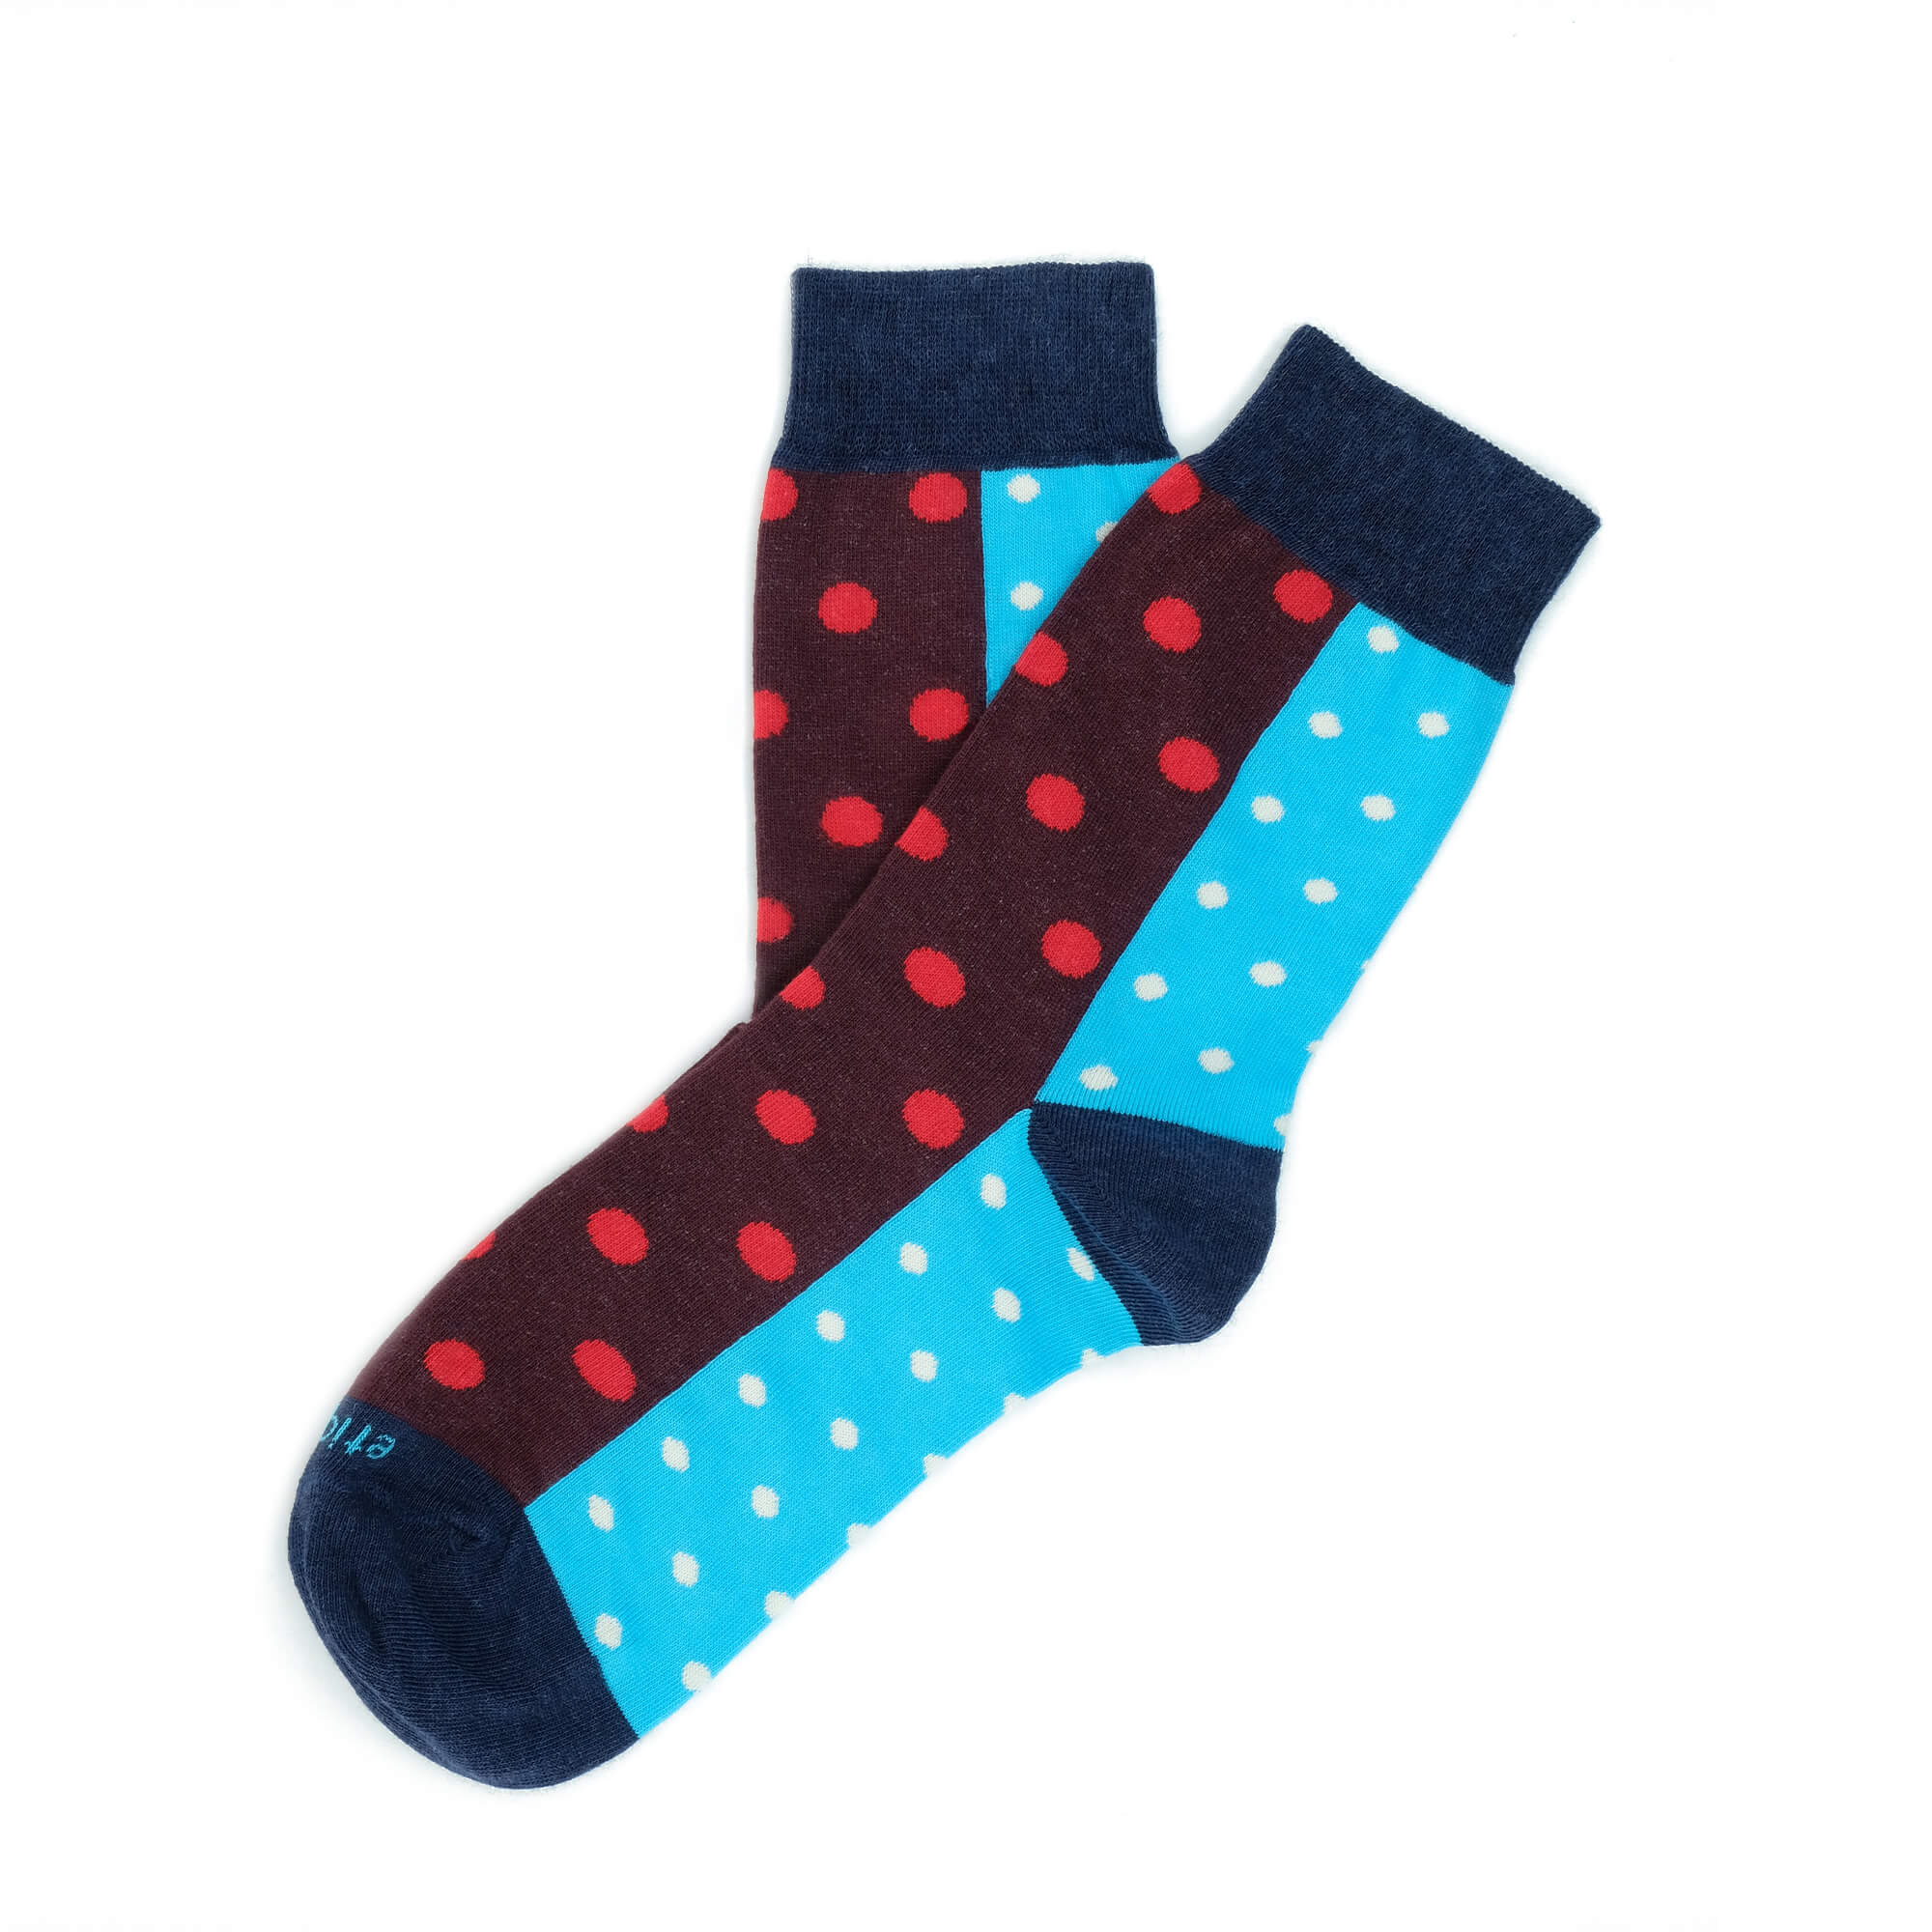 Womens Socks - Two Faced Women's Socks - Red/Cyaan⎪Etiquette Clothiers